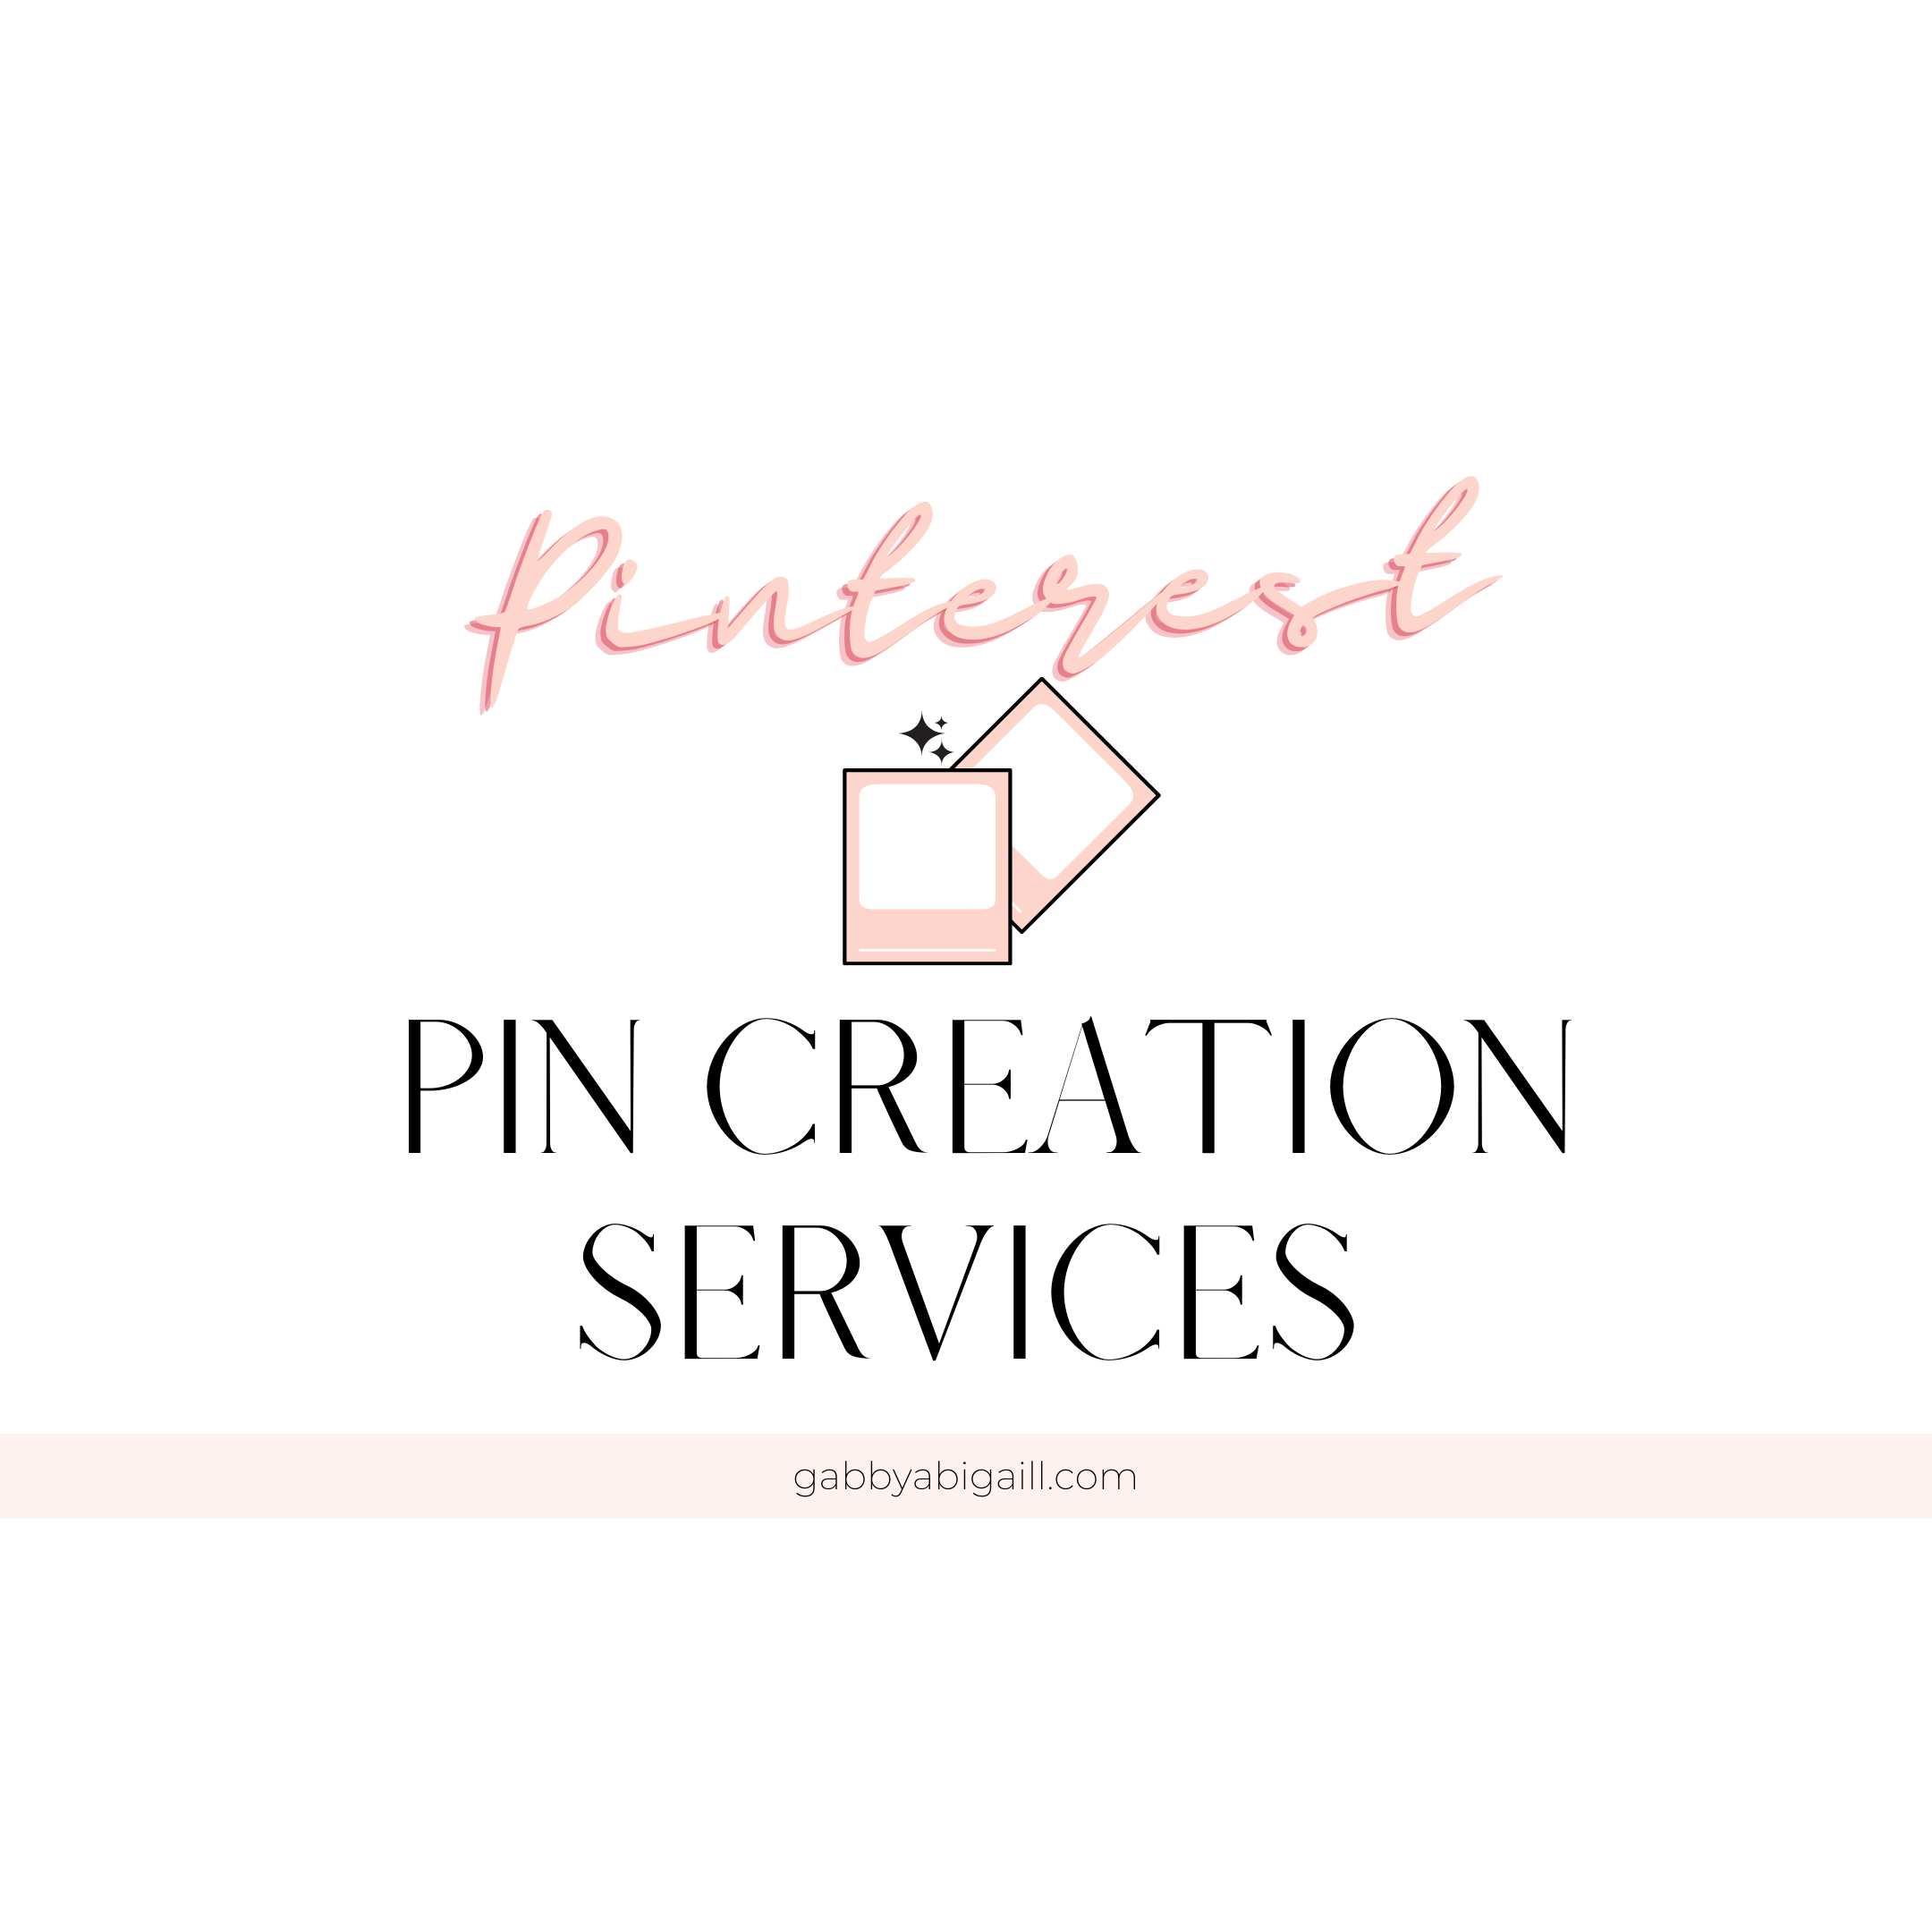 pinterest pin creation services